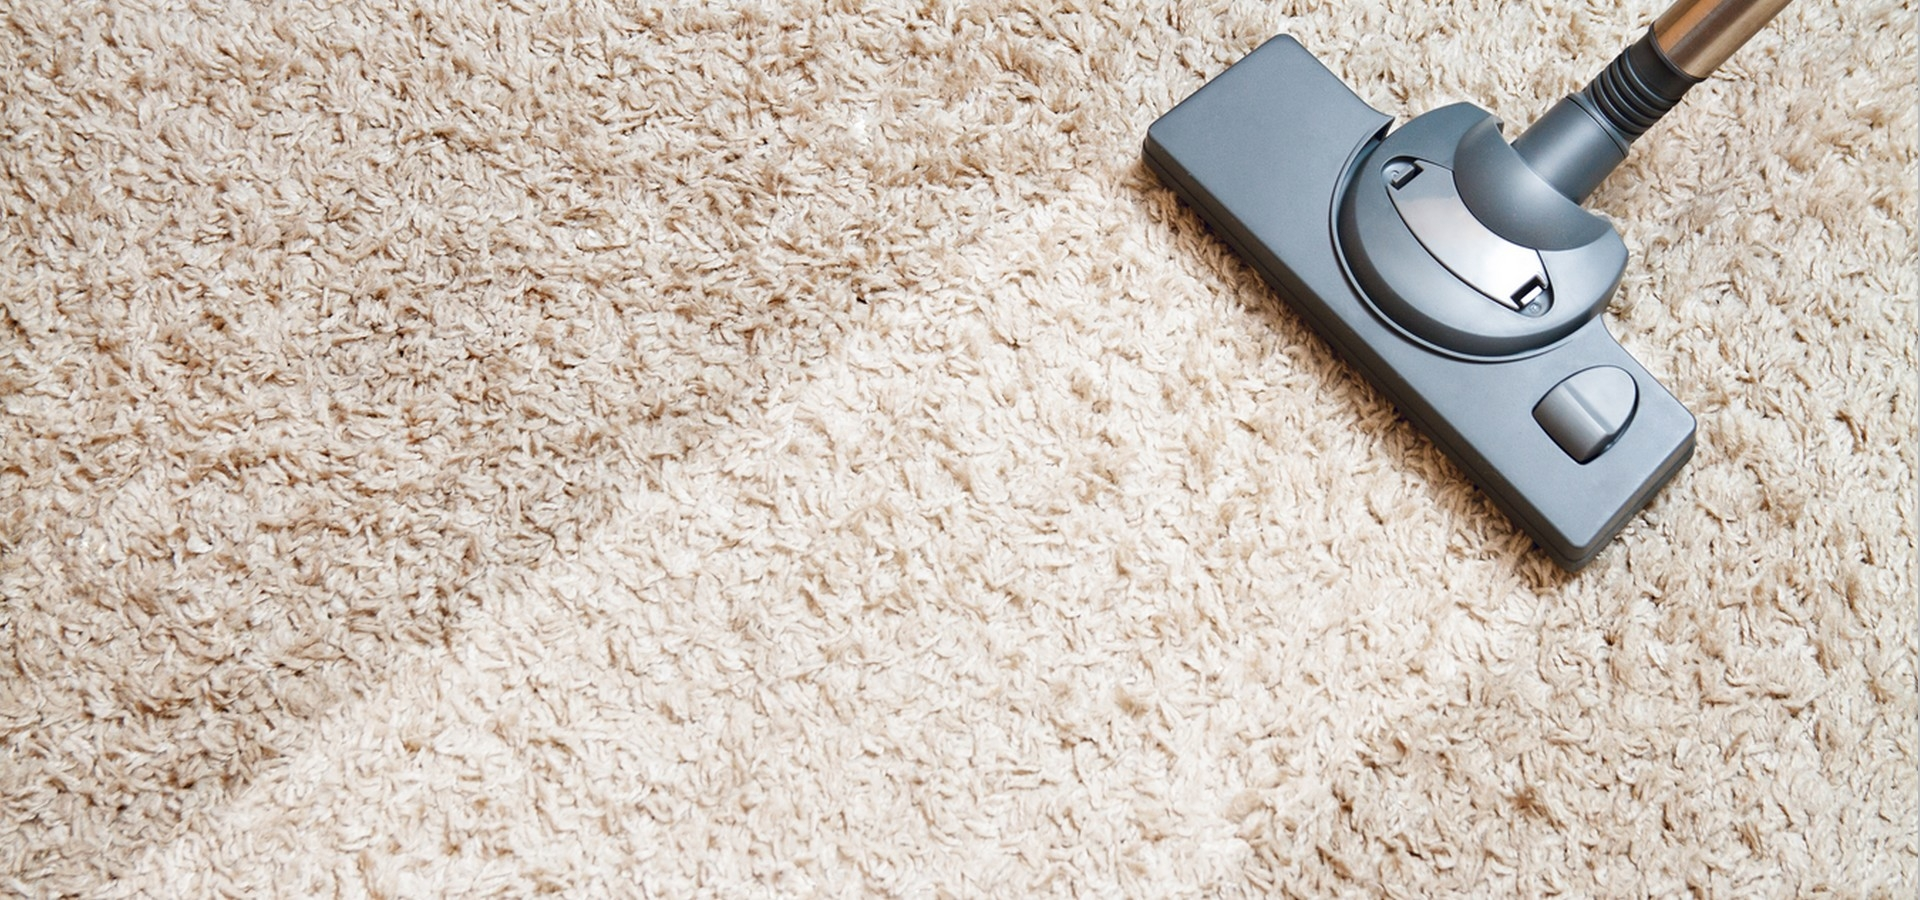 acificpro Carpet Cleaning (@pacificprocarpet) Cover Image